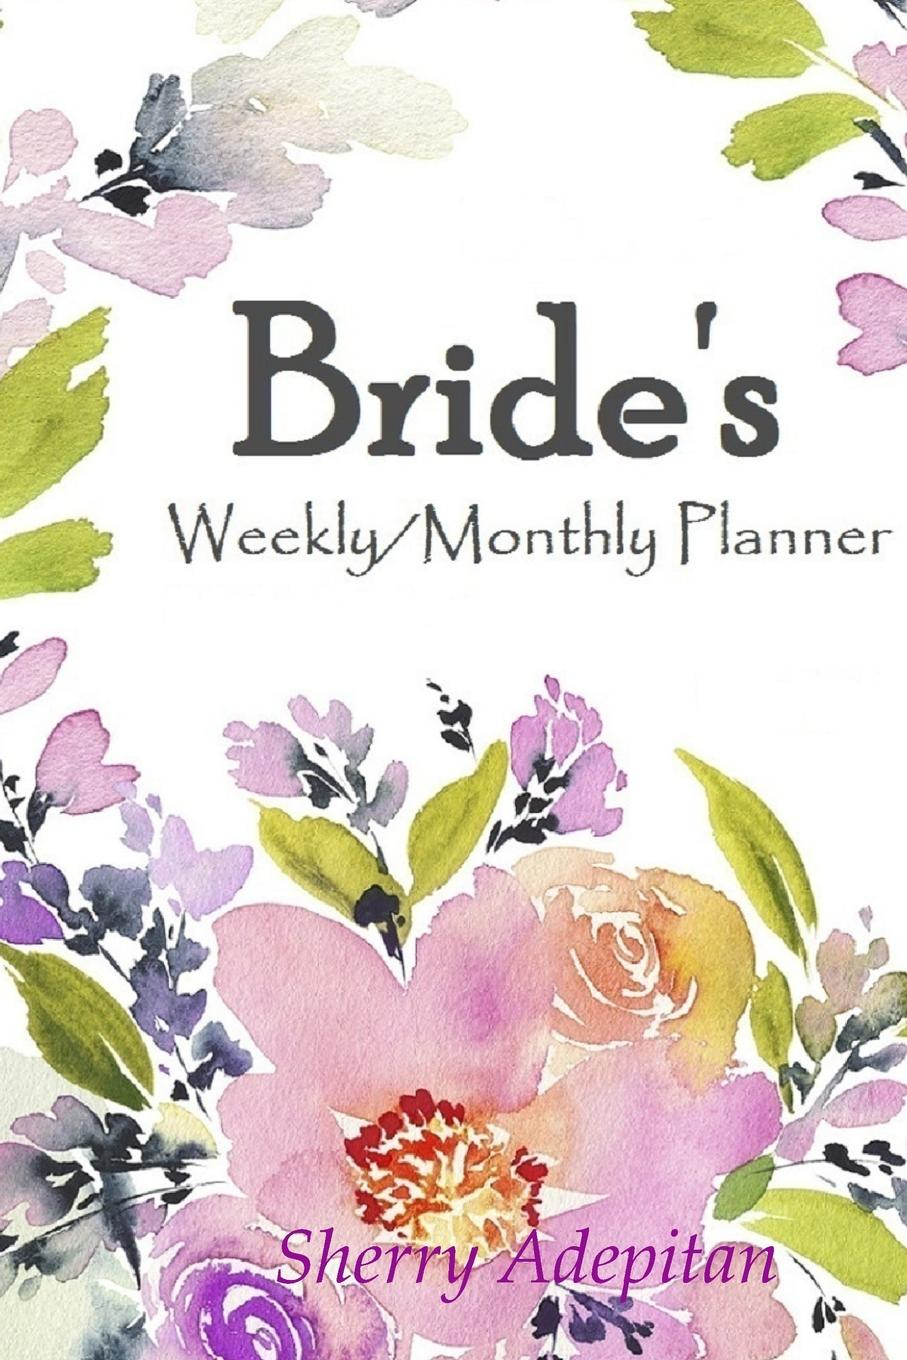 Sherry Adepitan Brides. Weekly/Monthly Planner week planner wall decal